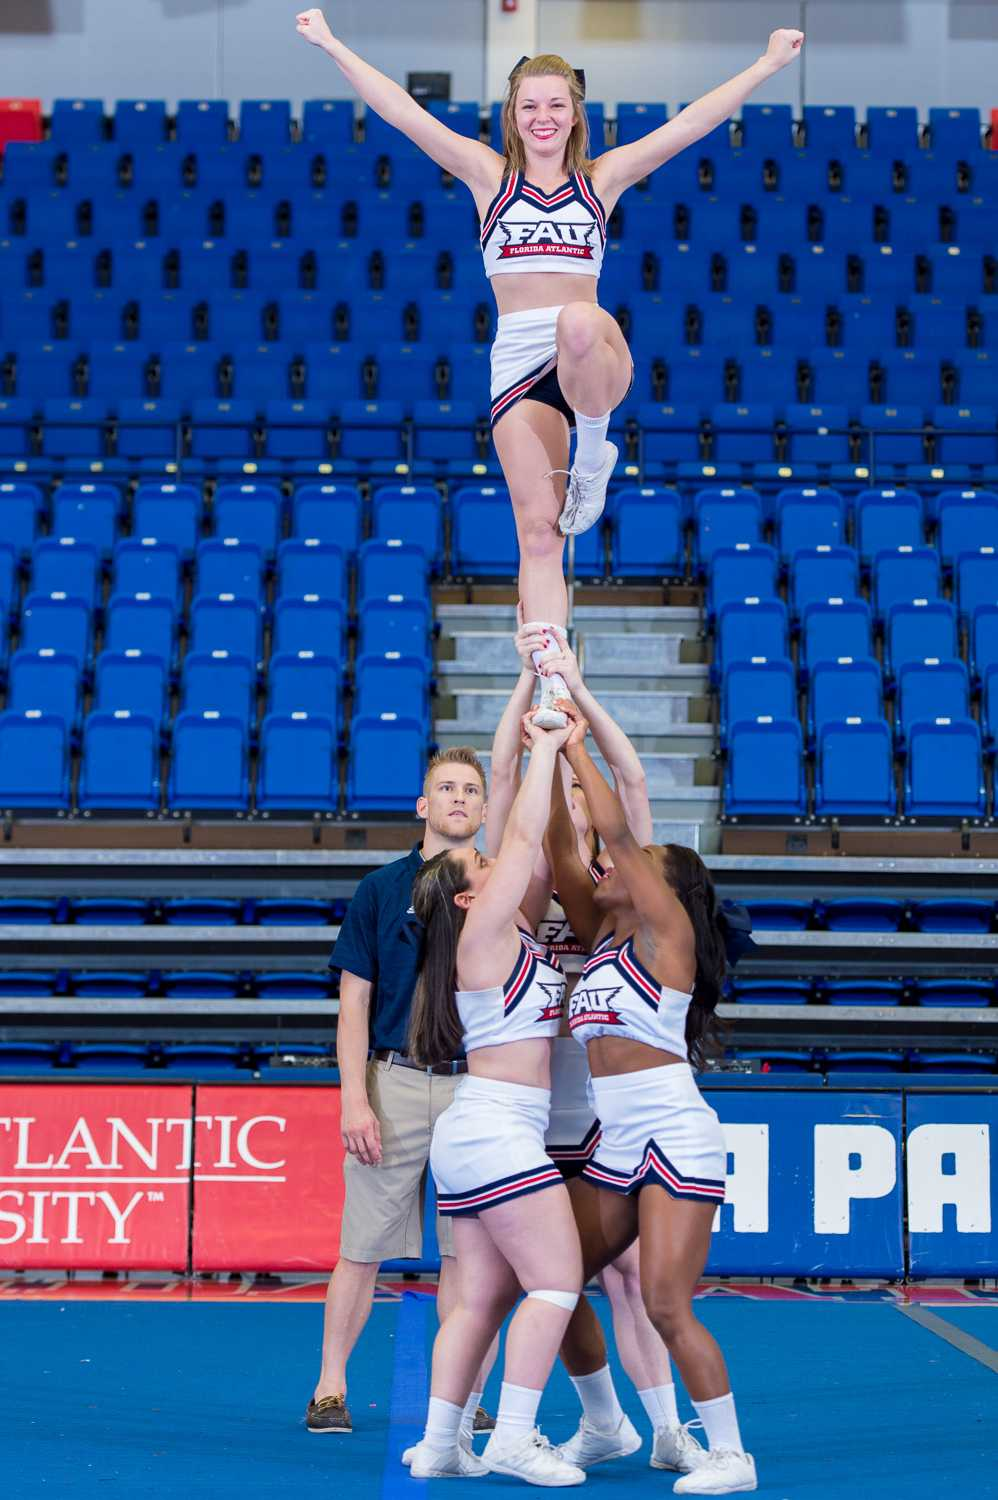 FAU Cheerleaders Marisa Paglino (left), Amanda Johnson (back),  Colette Bienvenu( right) and Kelsey Miller (top) pull a Liberty at the 2015 FAU Dance Team Showcase in The Burrow.